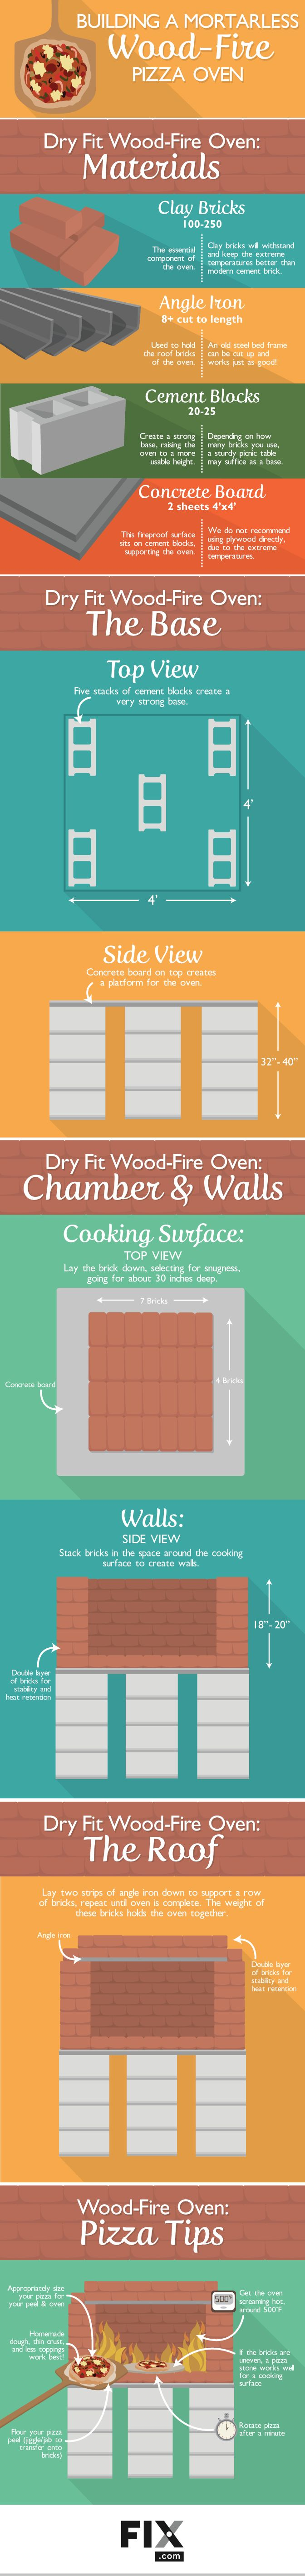 Building A Mortarless Wood-Fire Pizza Oven #infographic #Pizza #Food                                                                                                                                                      More